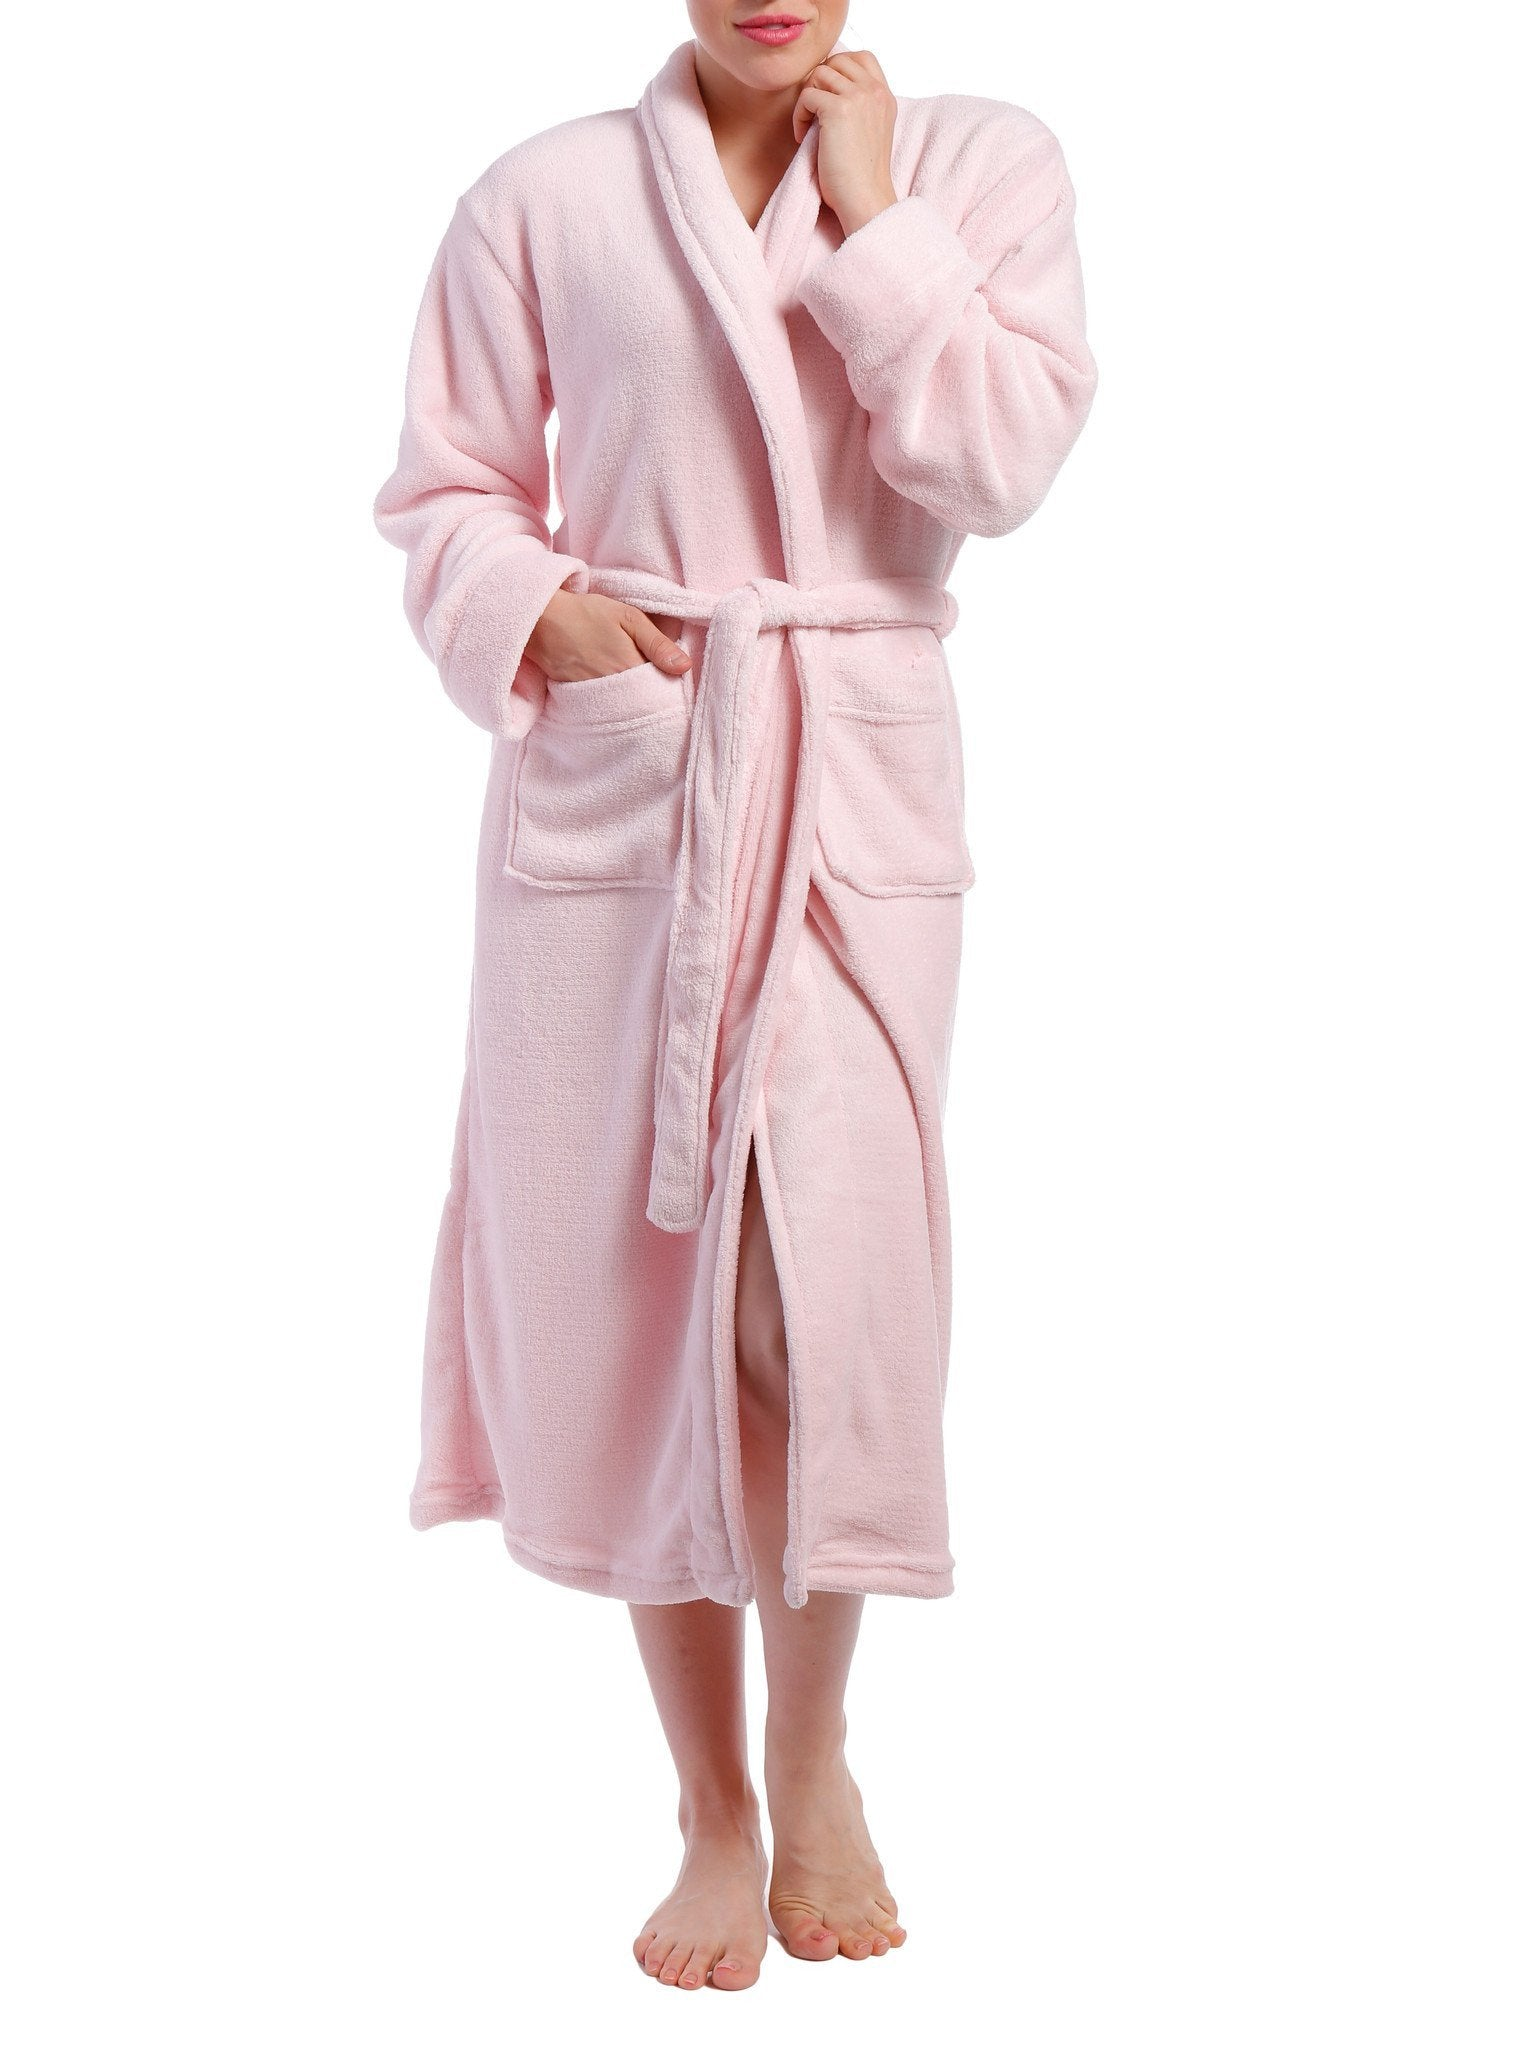 Women's Coral Fleece Plush Robe - Pink